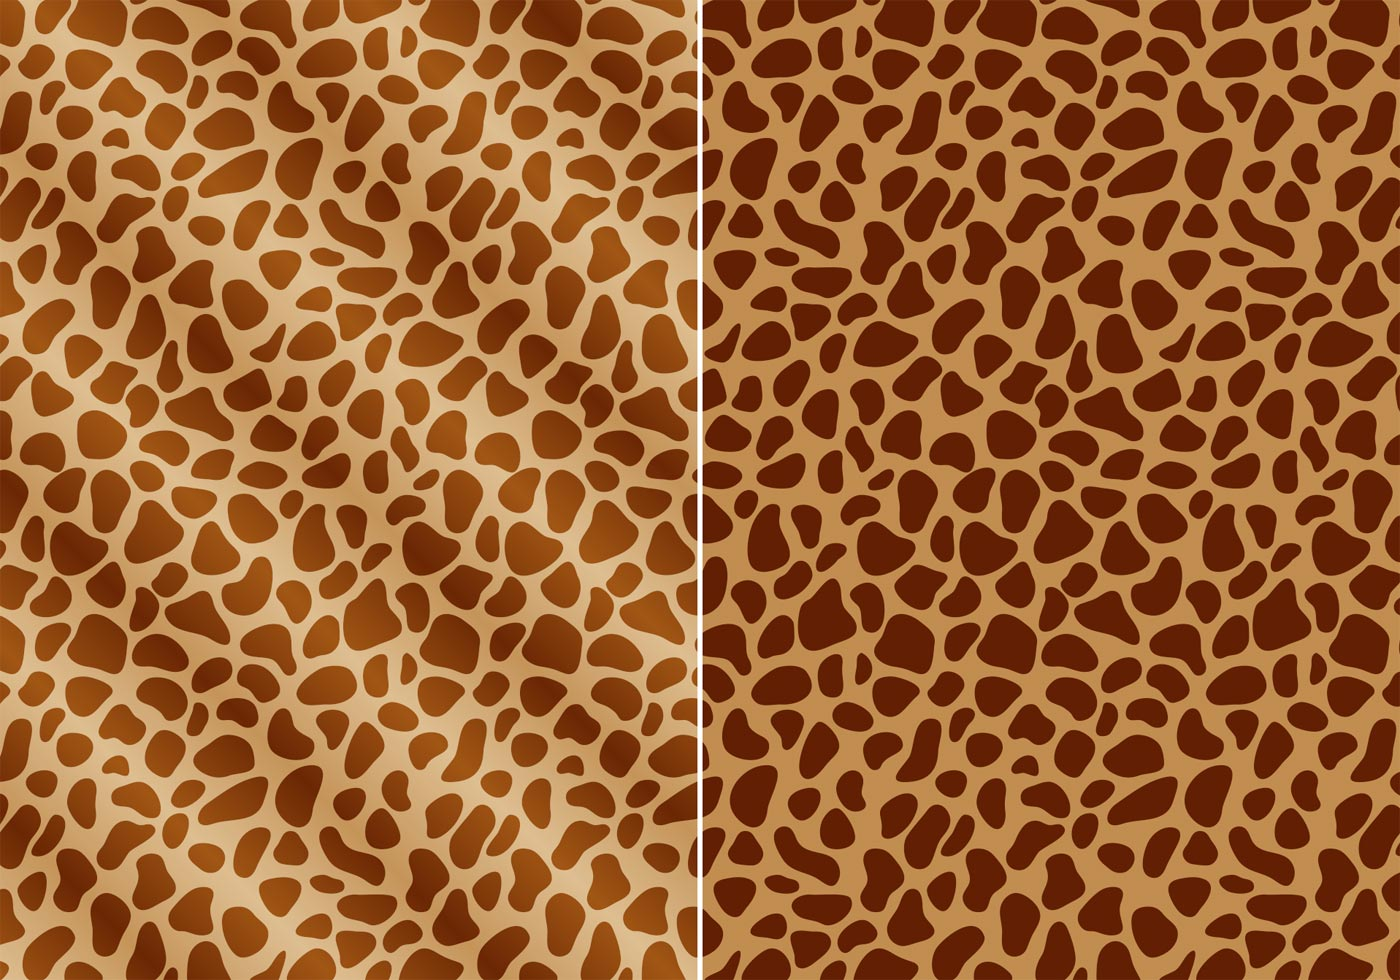 African Animal Wallpaper Border Free Giraffe Prints Vector Download Free Vector Art